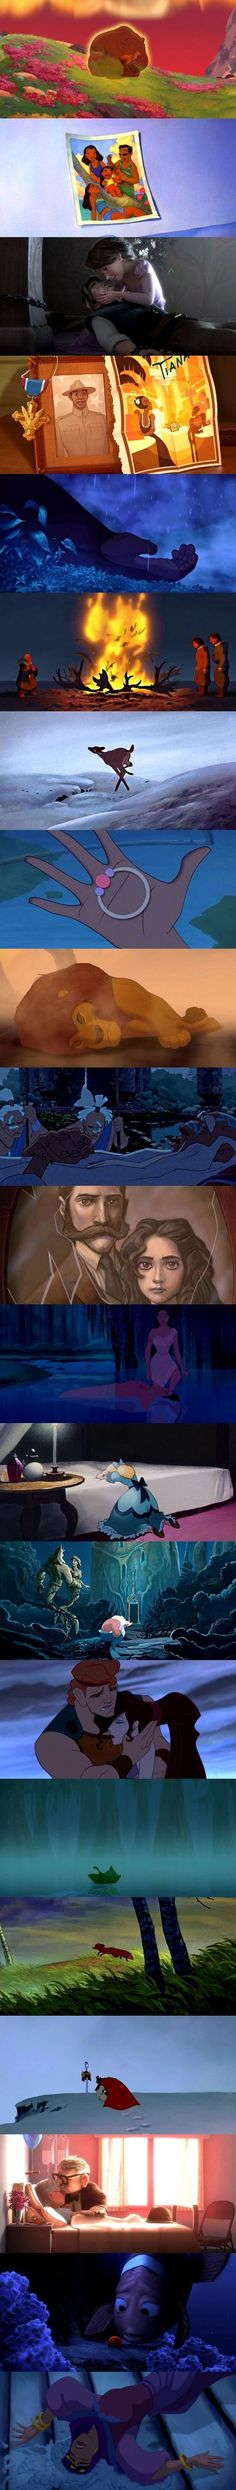 Juste les moments les plus tristes de Disney